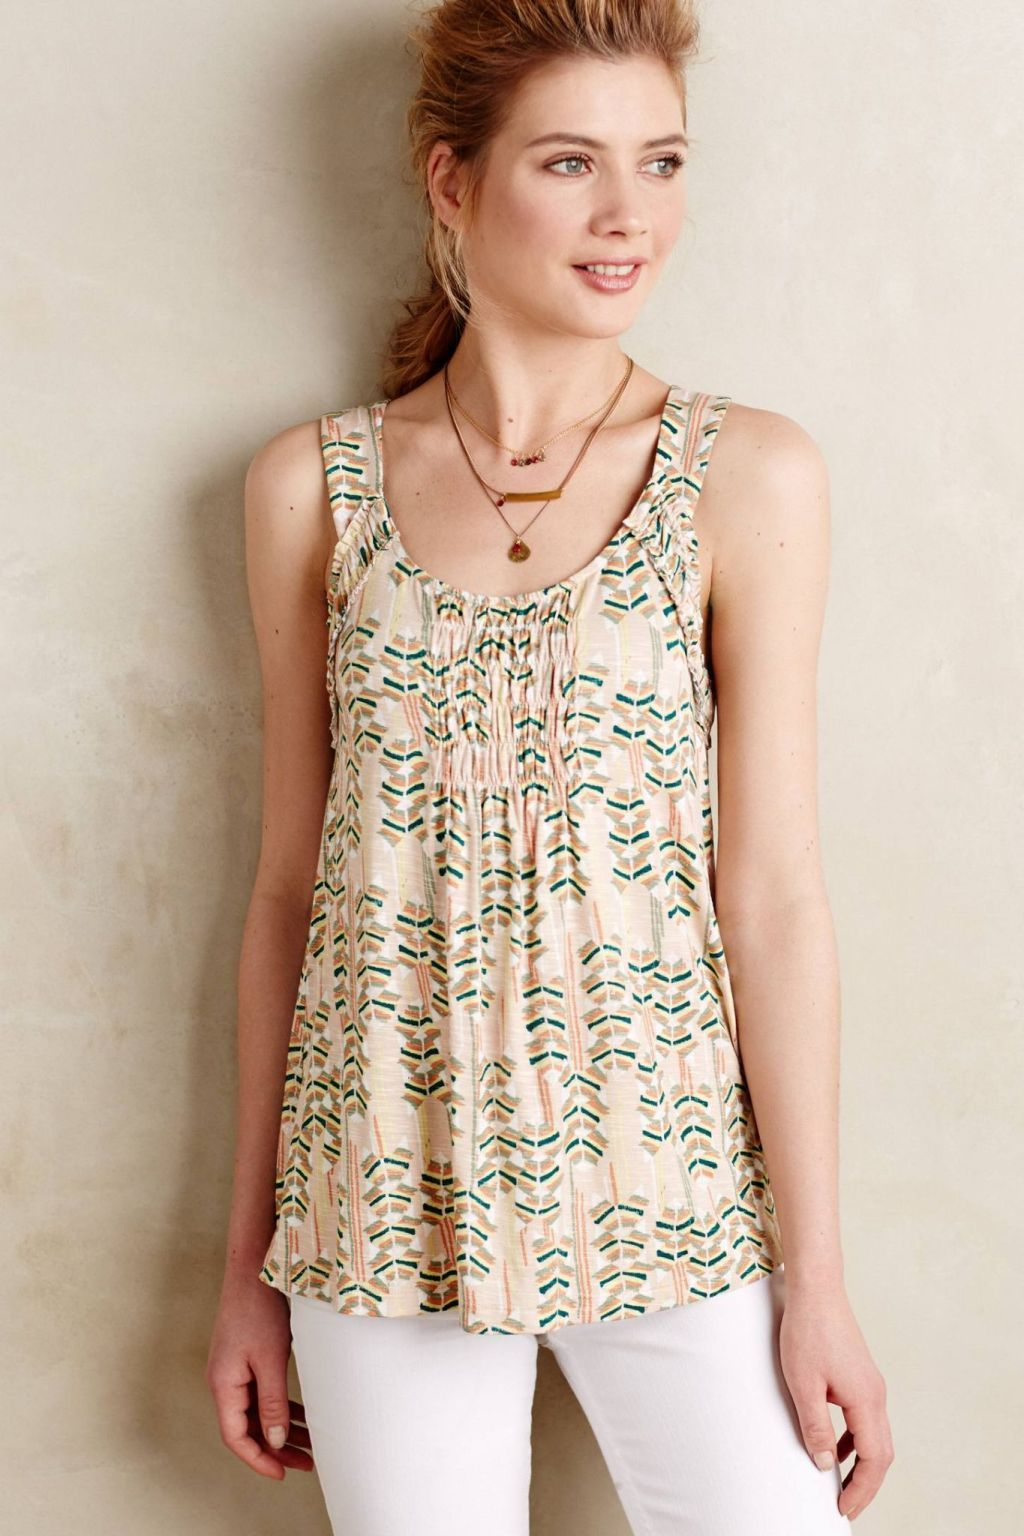 Positano Smocked Tank by Meadow Rue